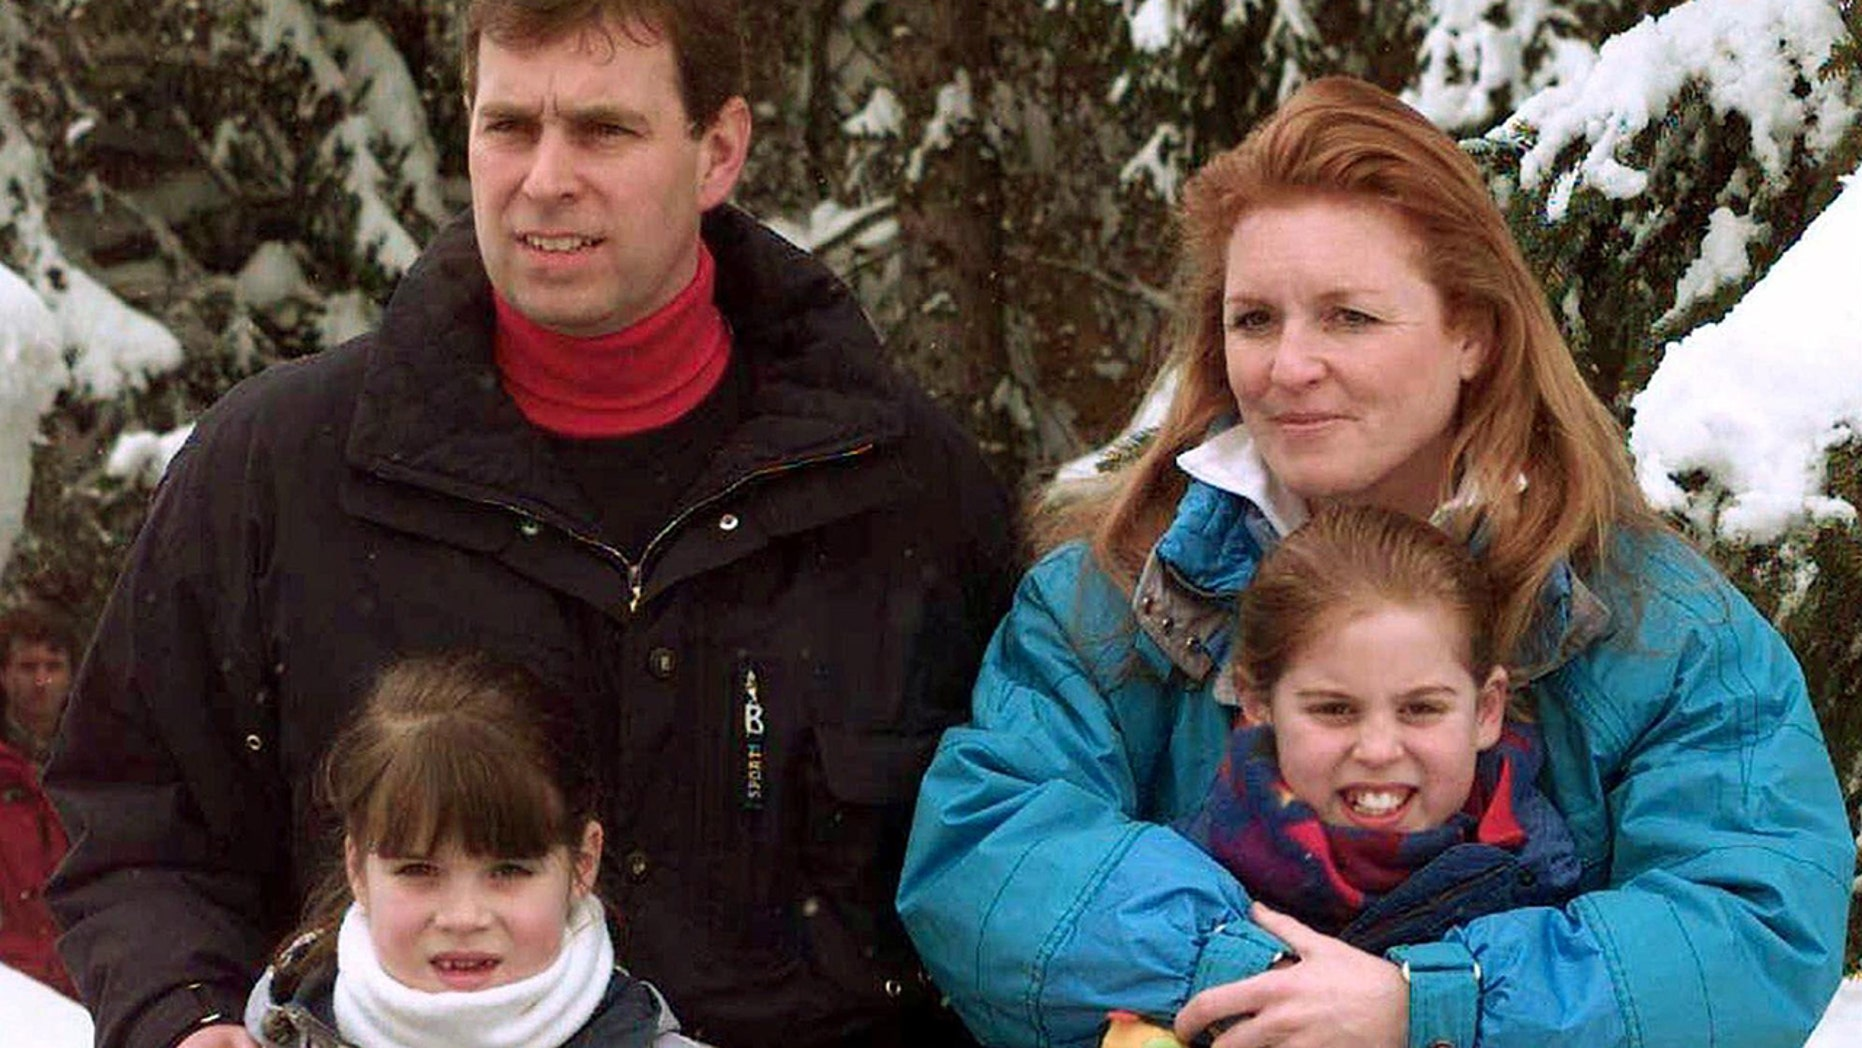 Prince Andrew and his then-wife Sarah Ferguson and their two daughters, Eugenie, bottom left, and Beatrice on February 19, 1999.